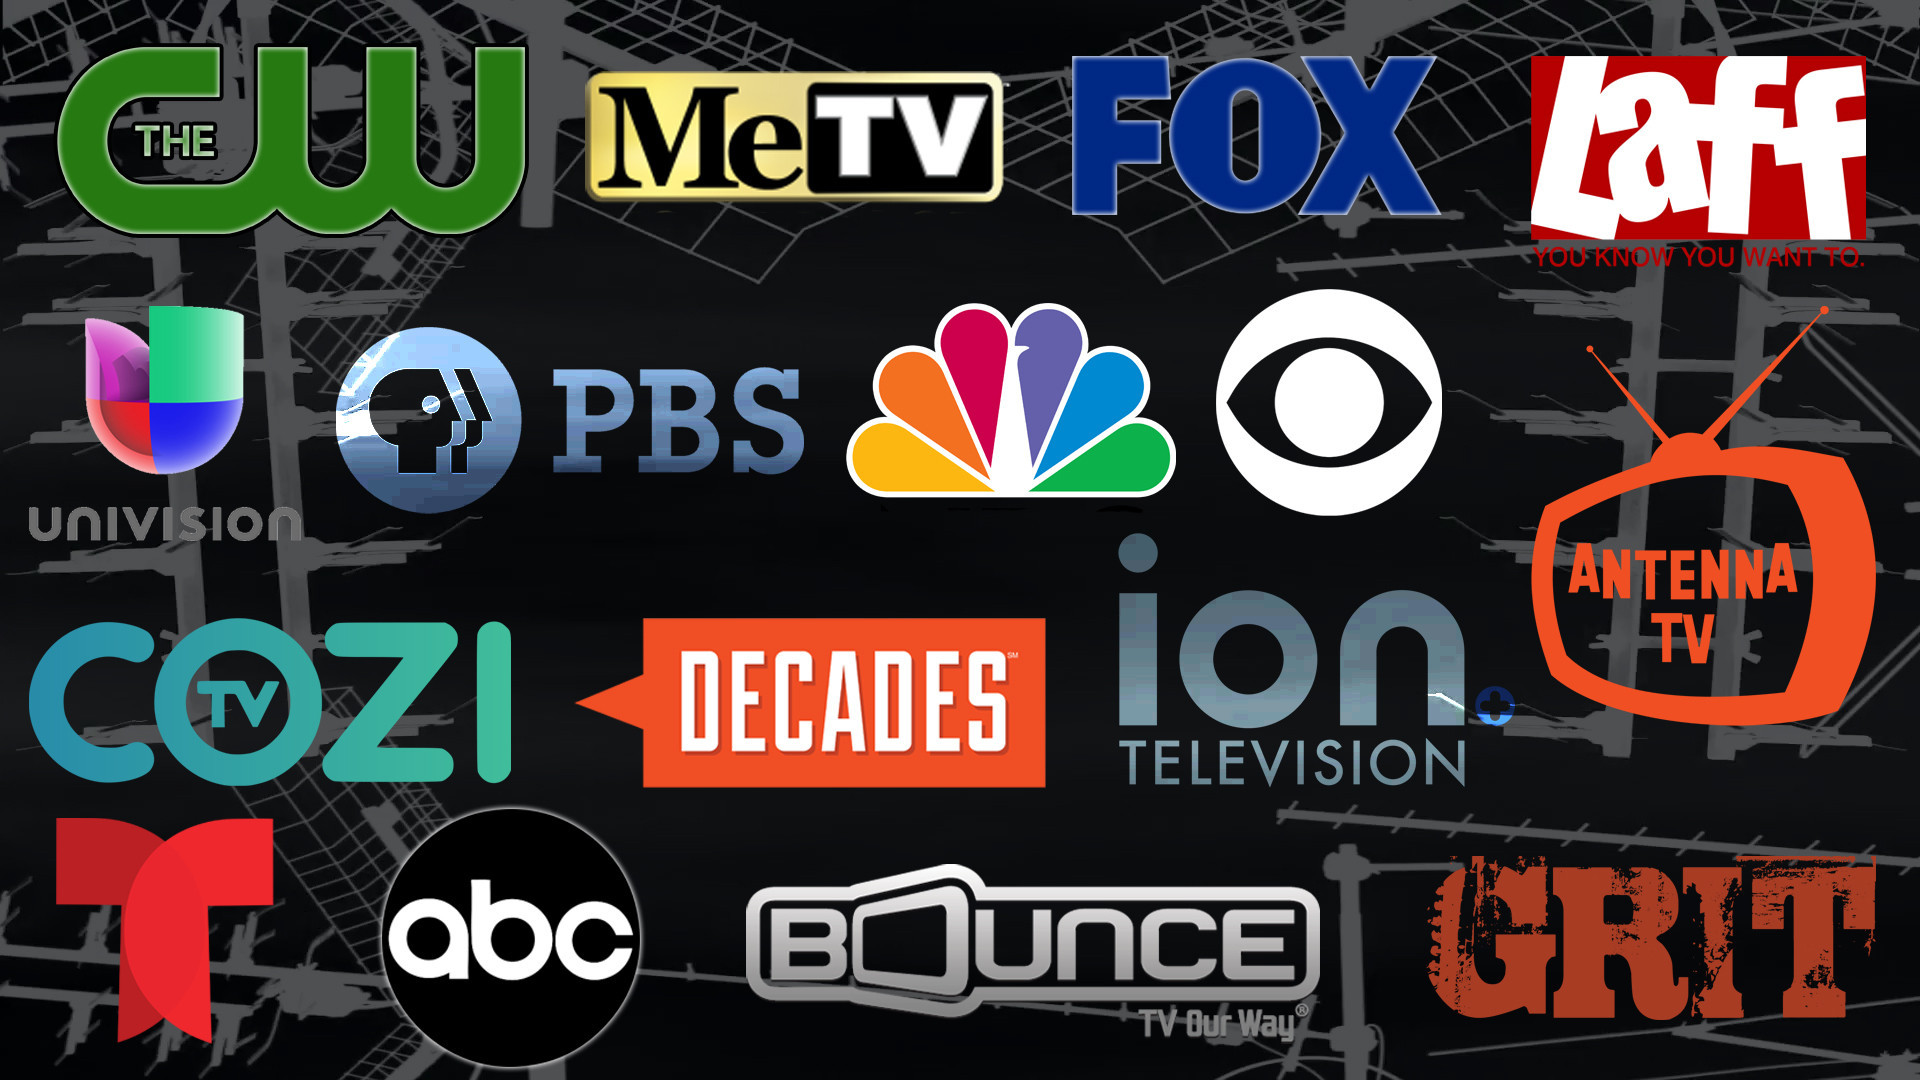 Cable channel blacked out Antenna TV still free for the